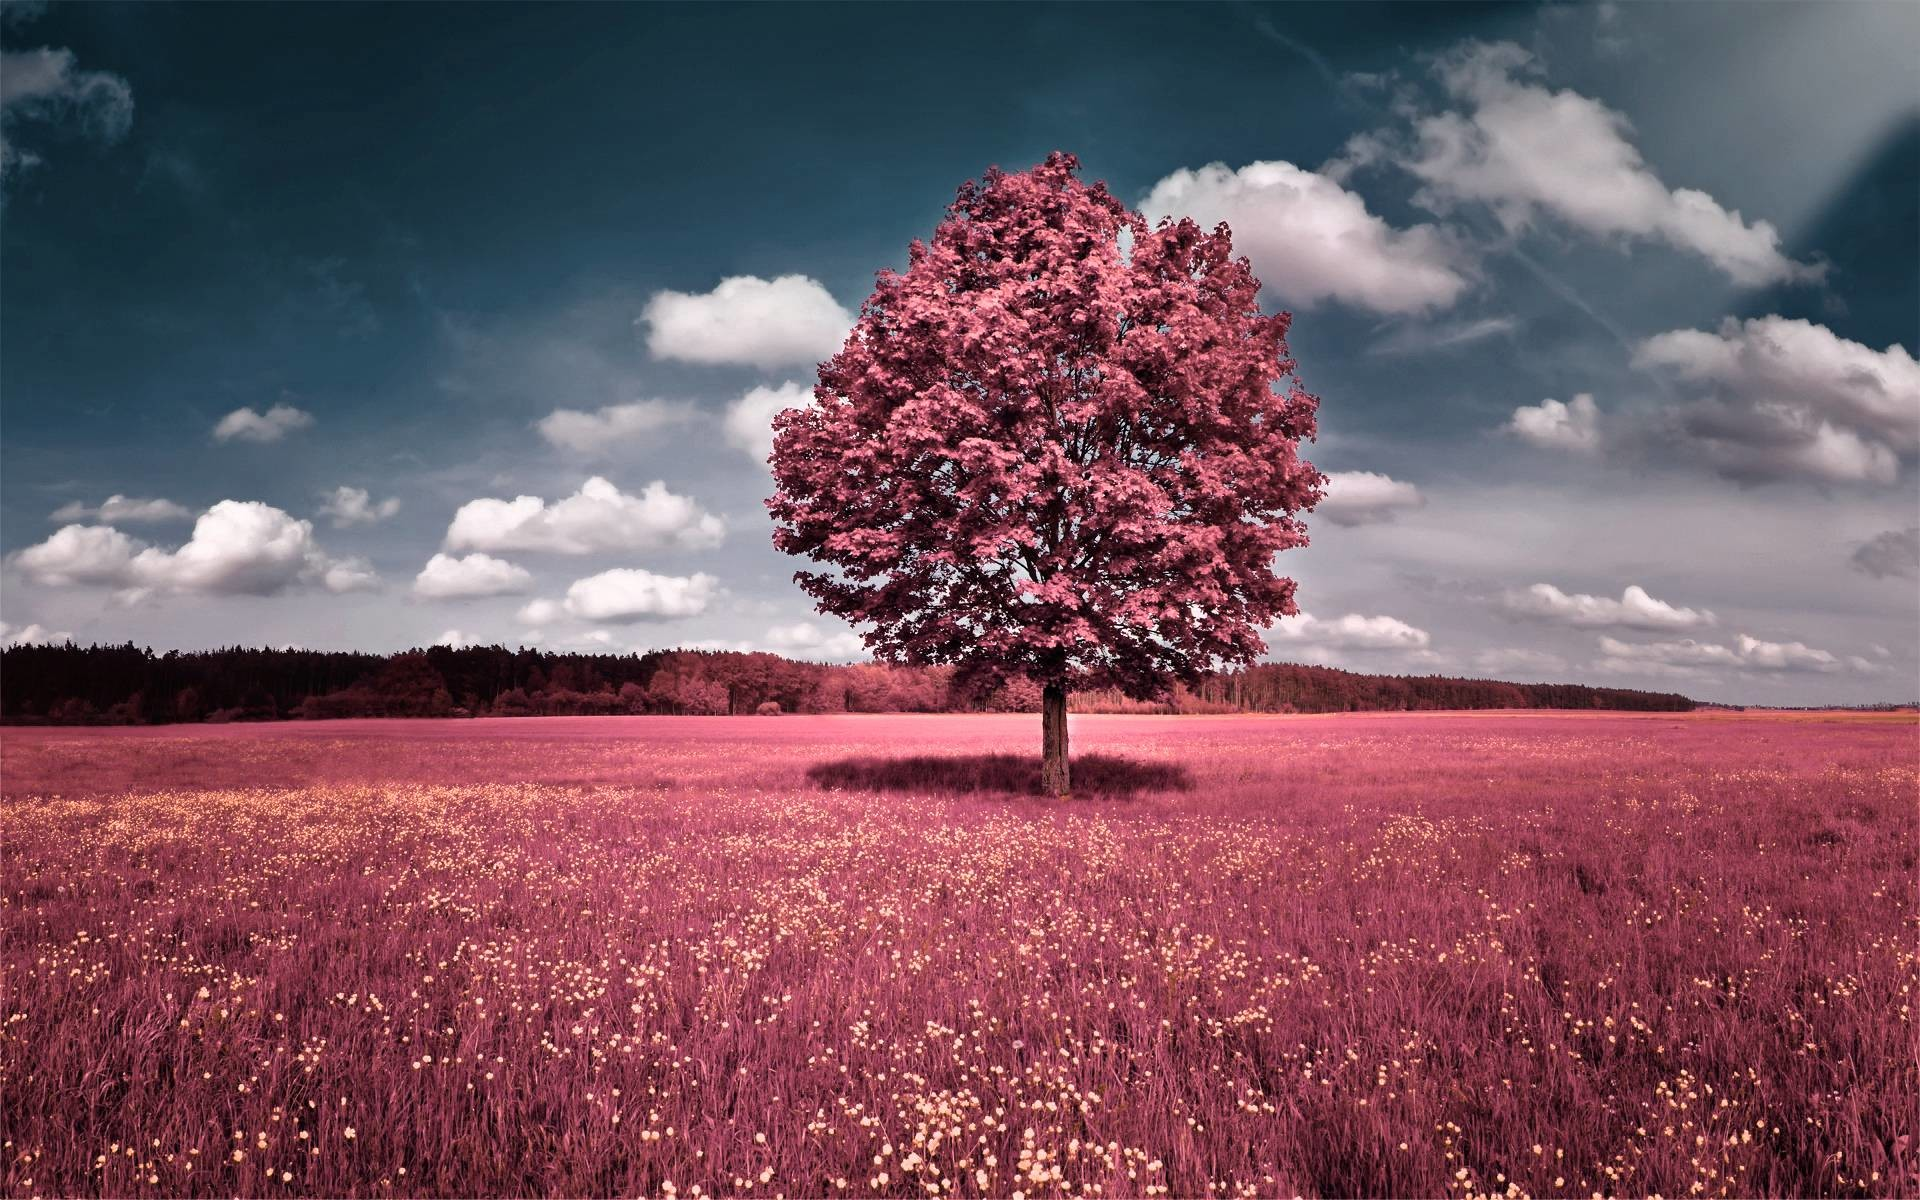 Pretty nature backgrounds 59 images - Pretty nature backgrounds ...